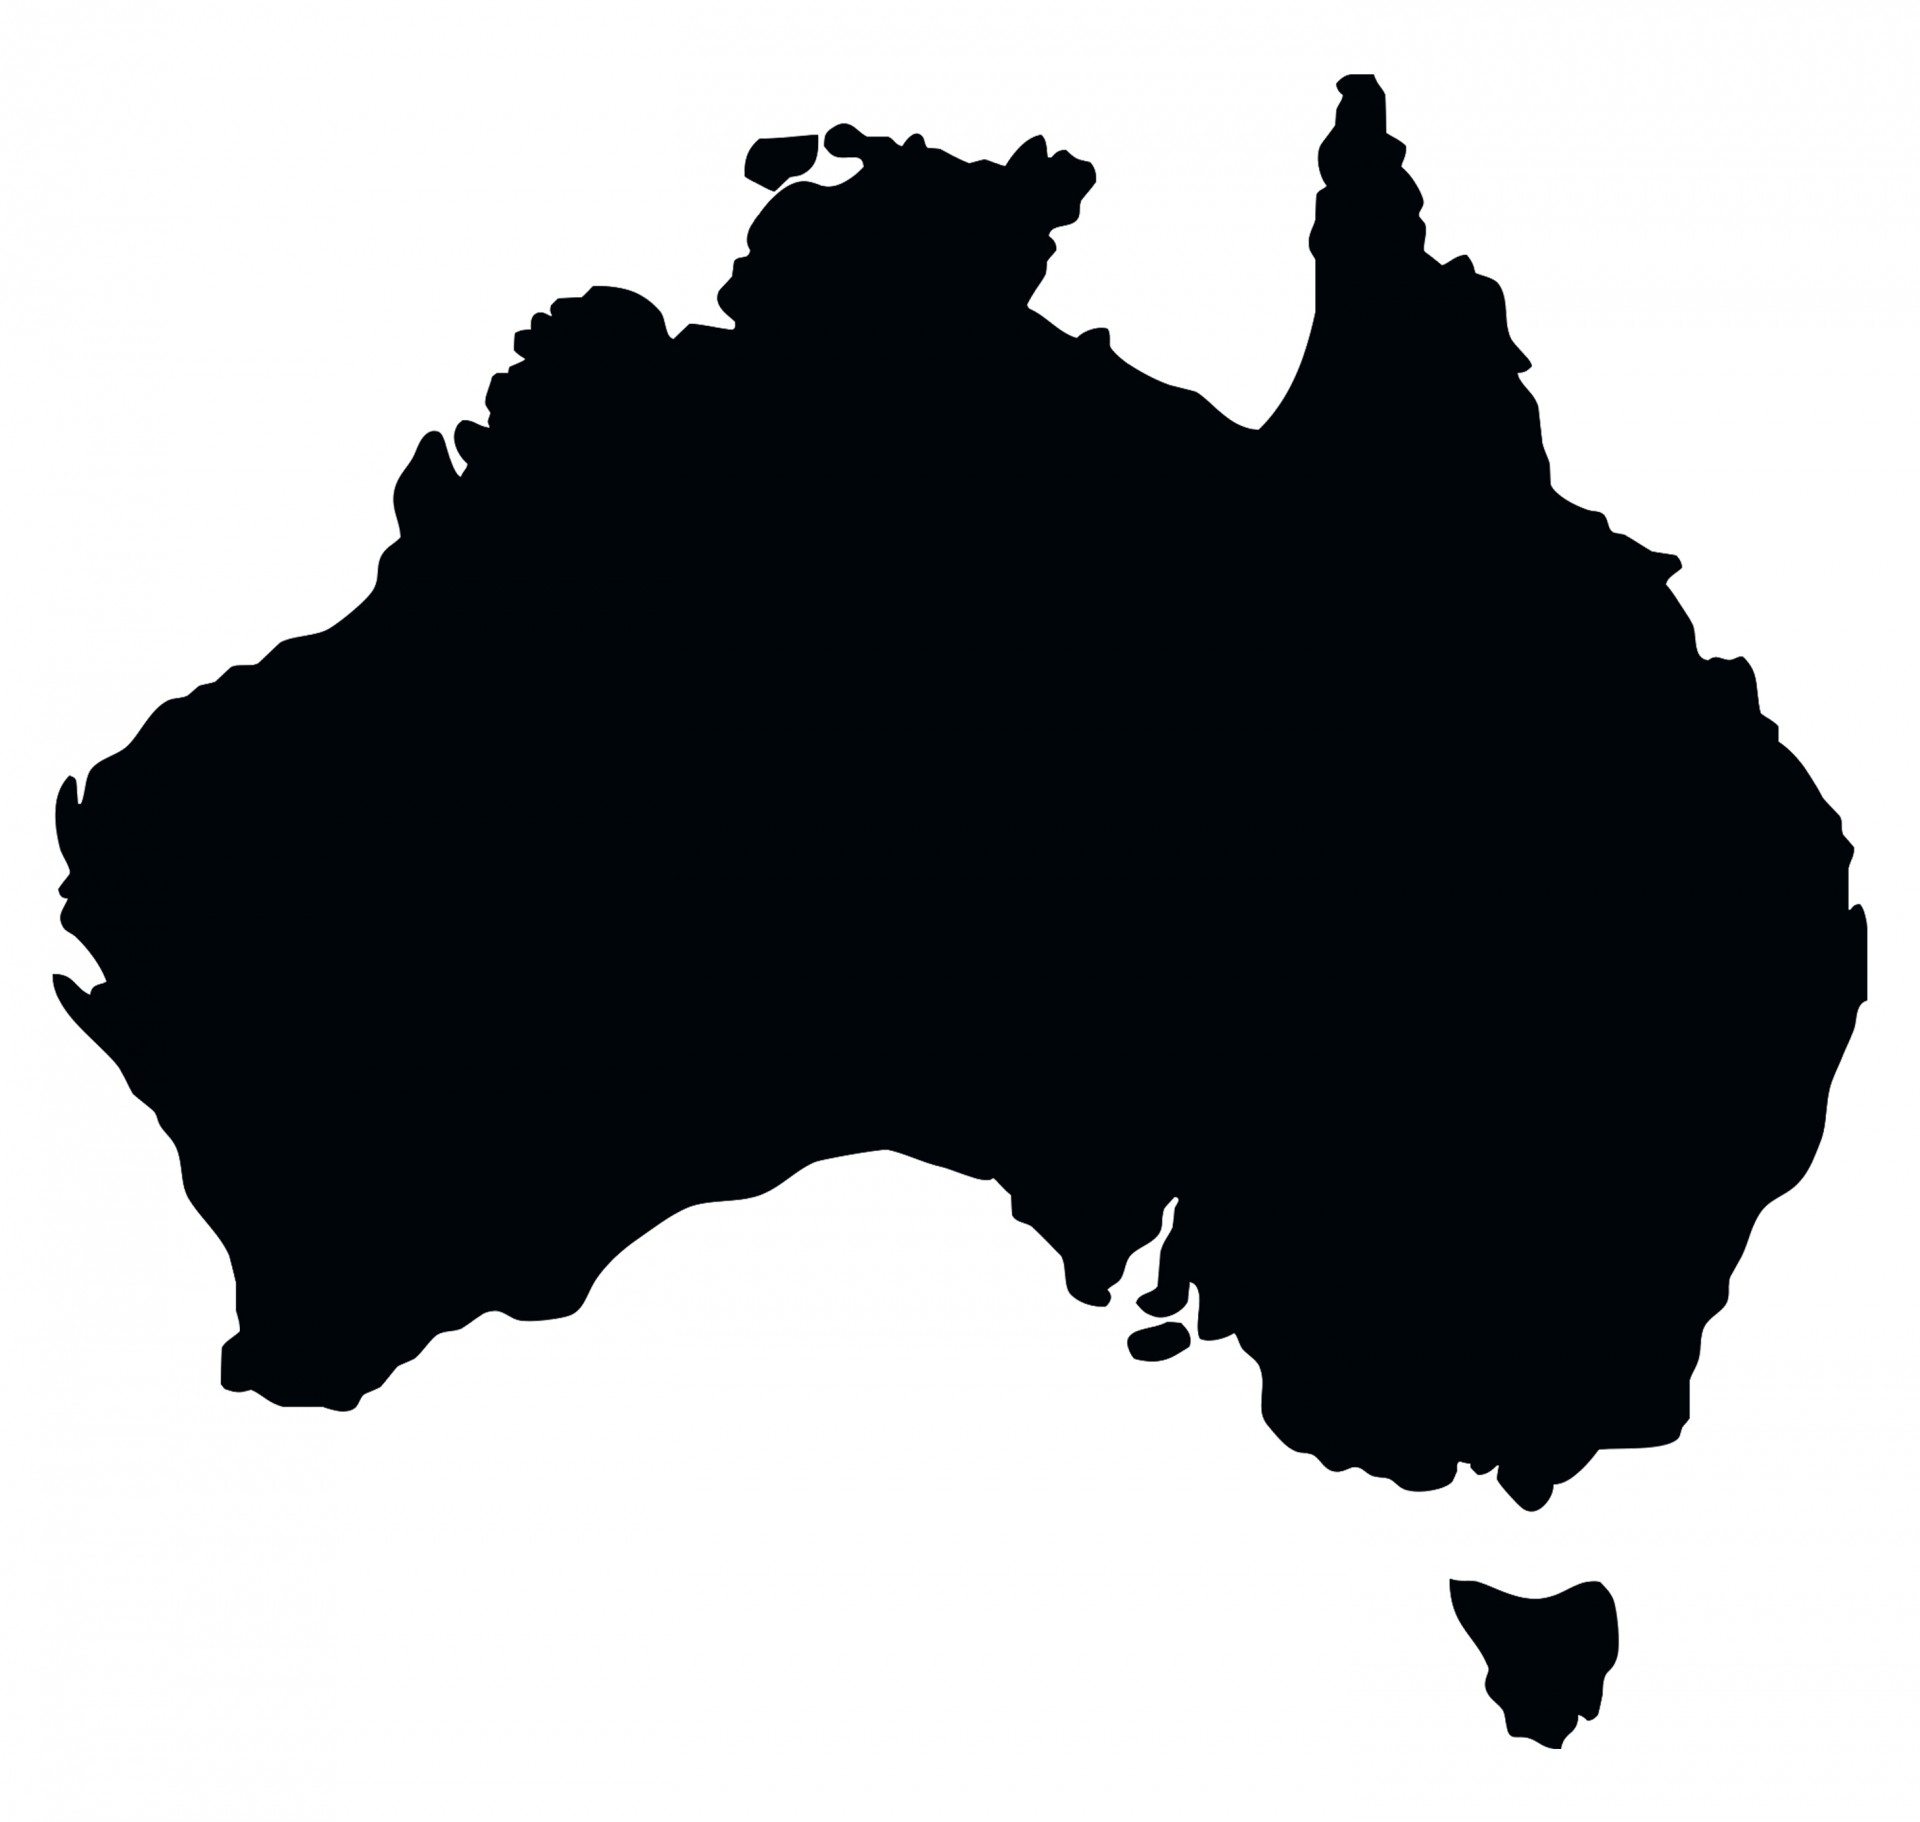 Map free stock photo. Australia clipart